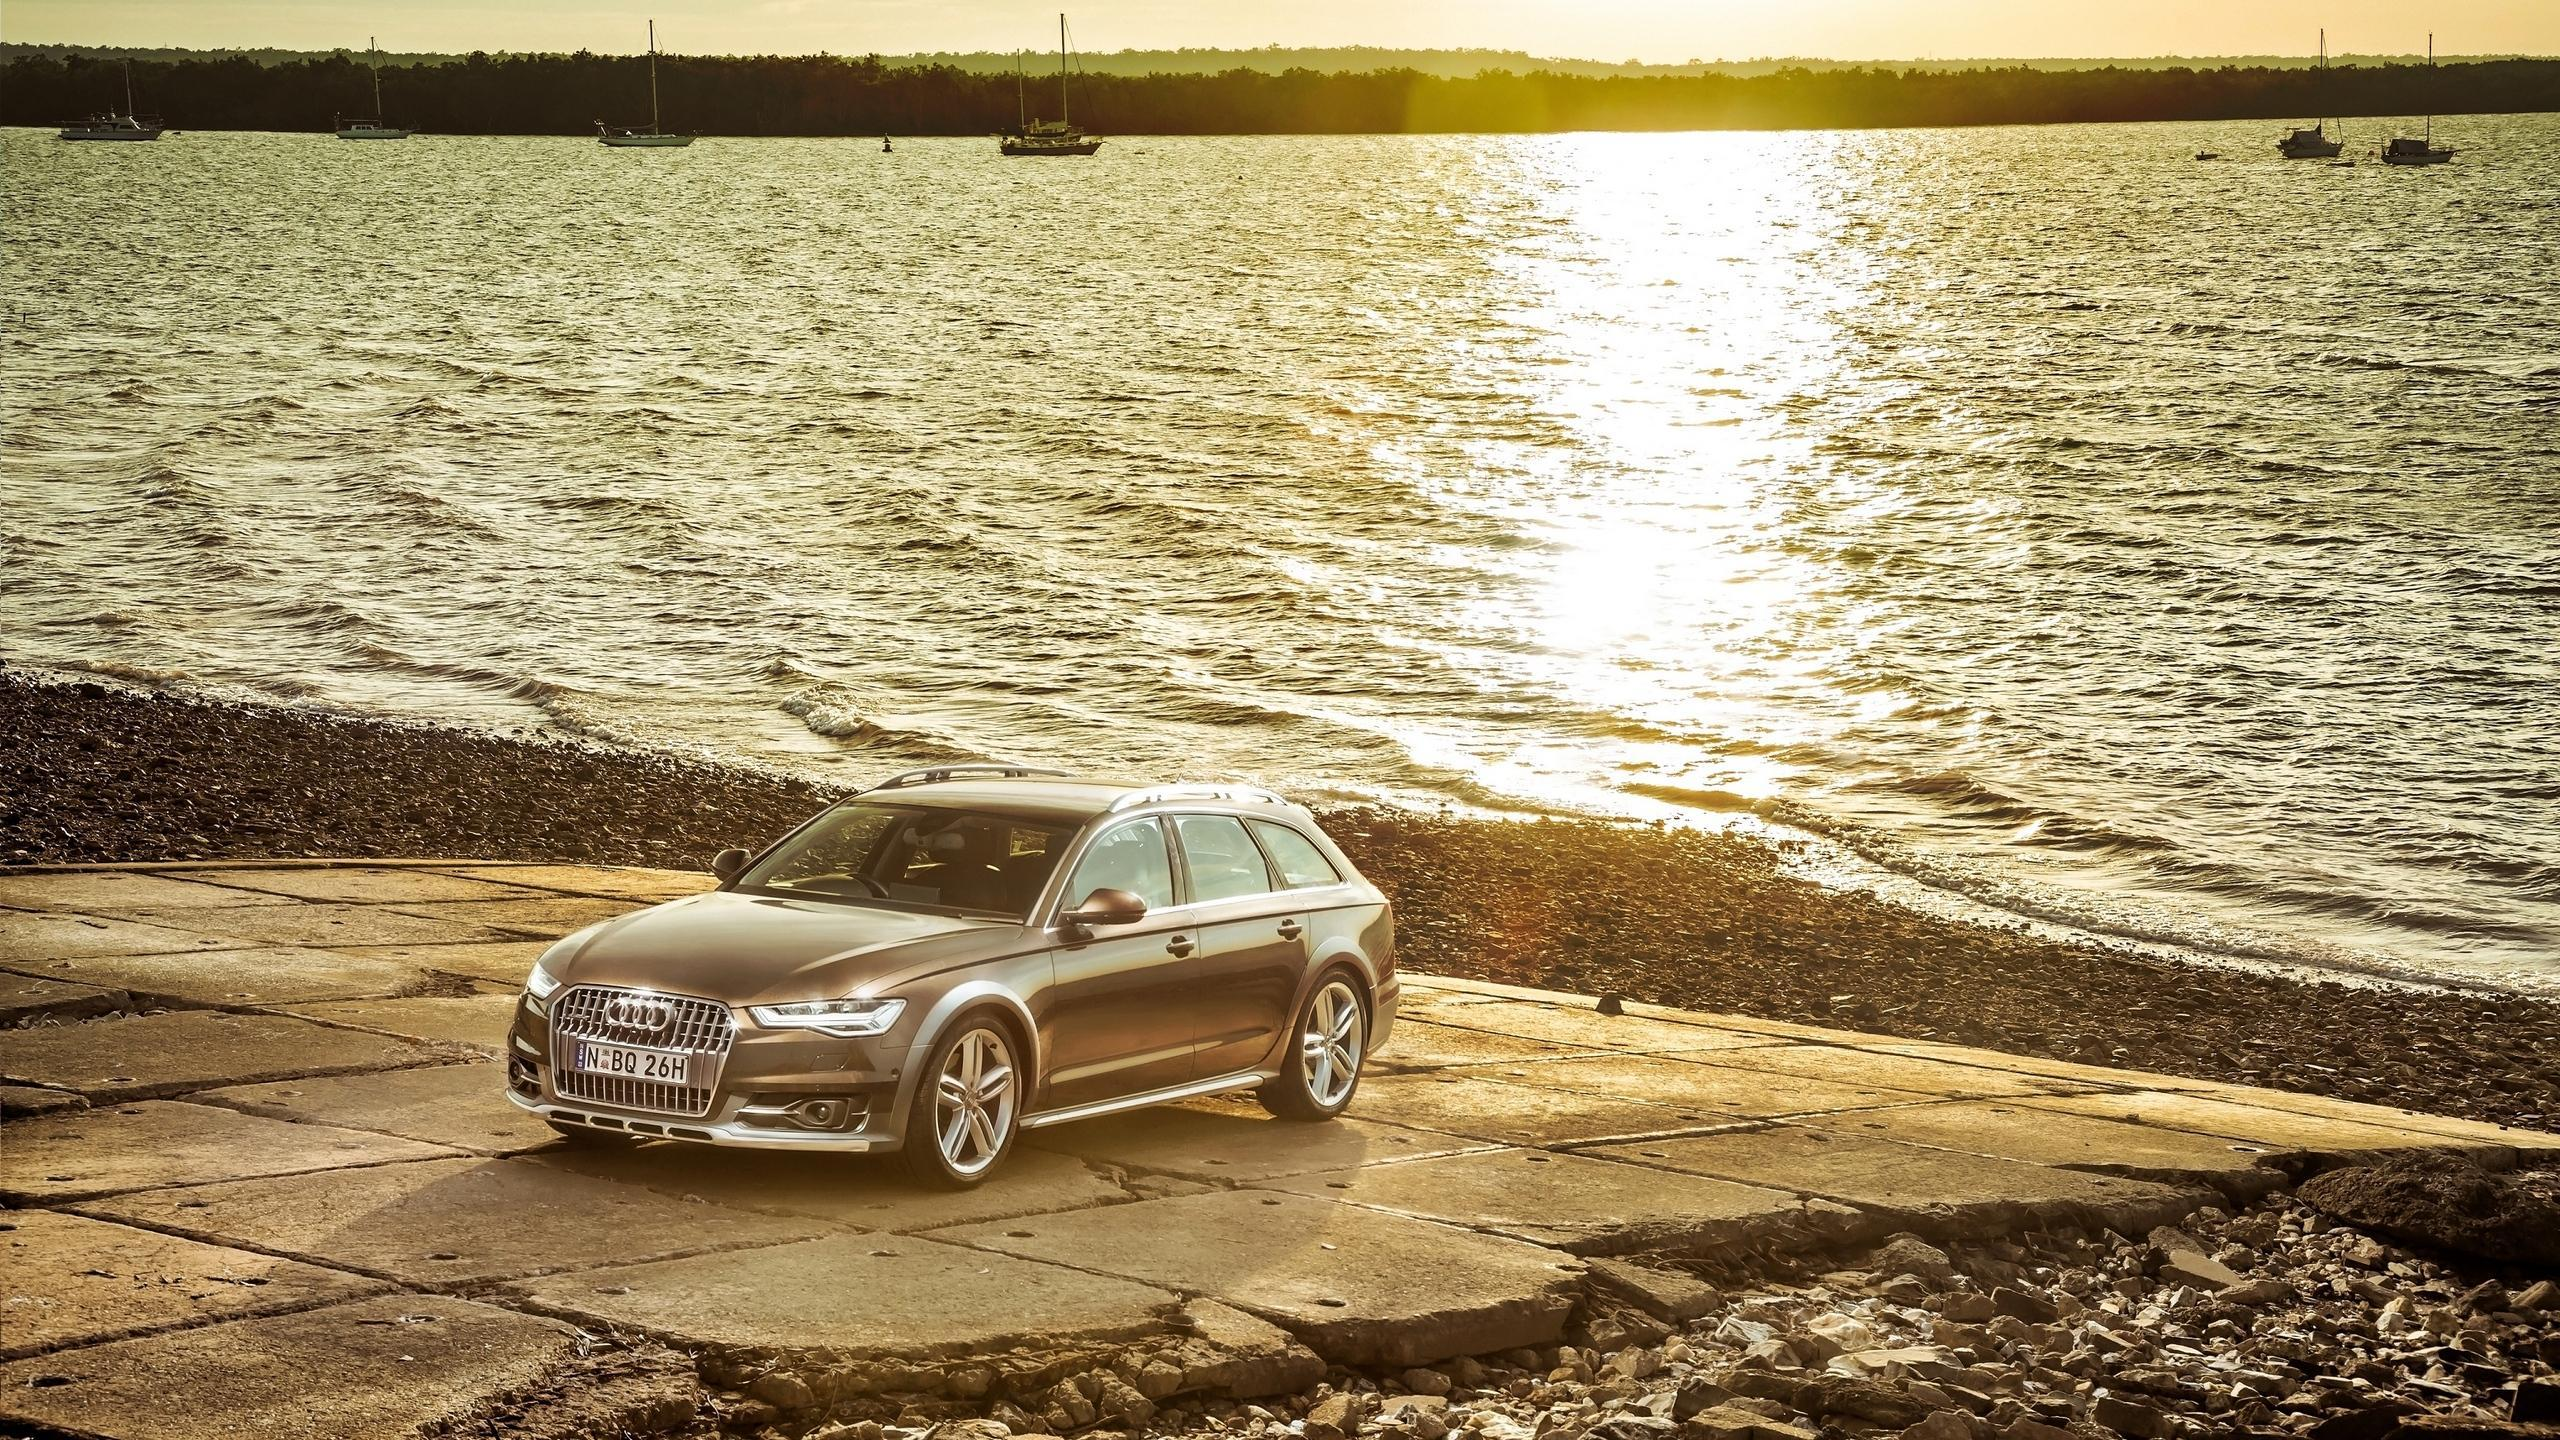 Download wallpapers 2560x1440 audi, a6, allroad, side view widescreen